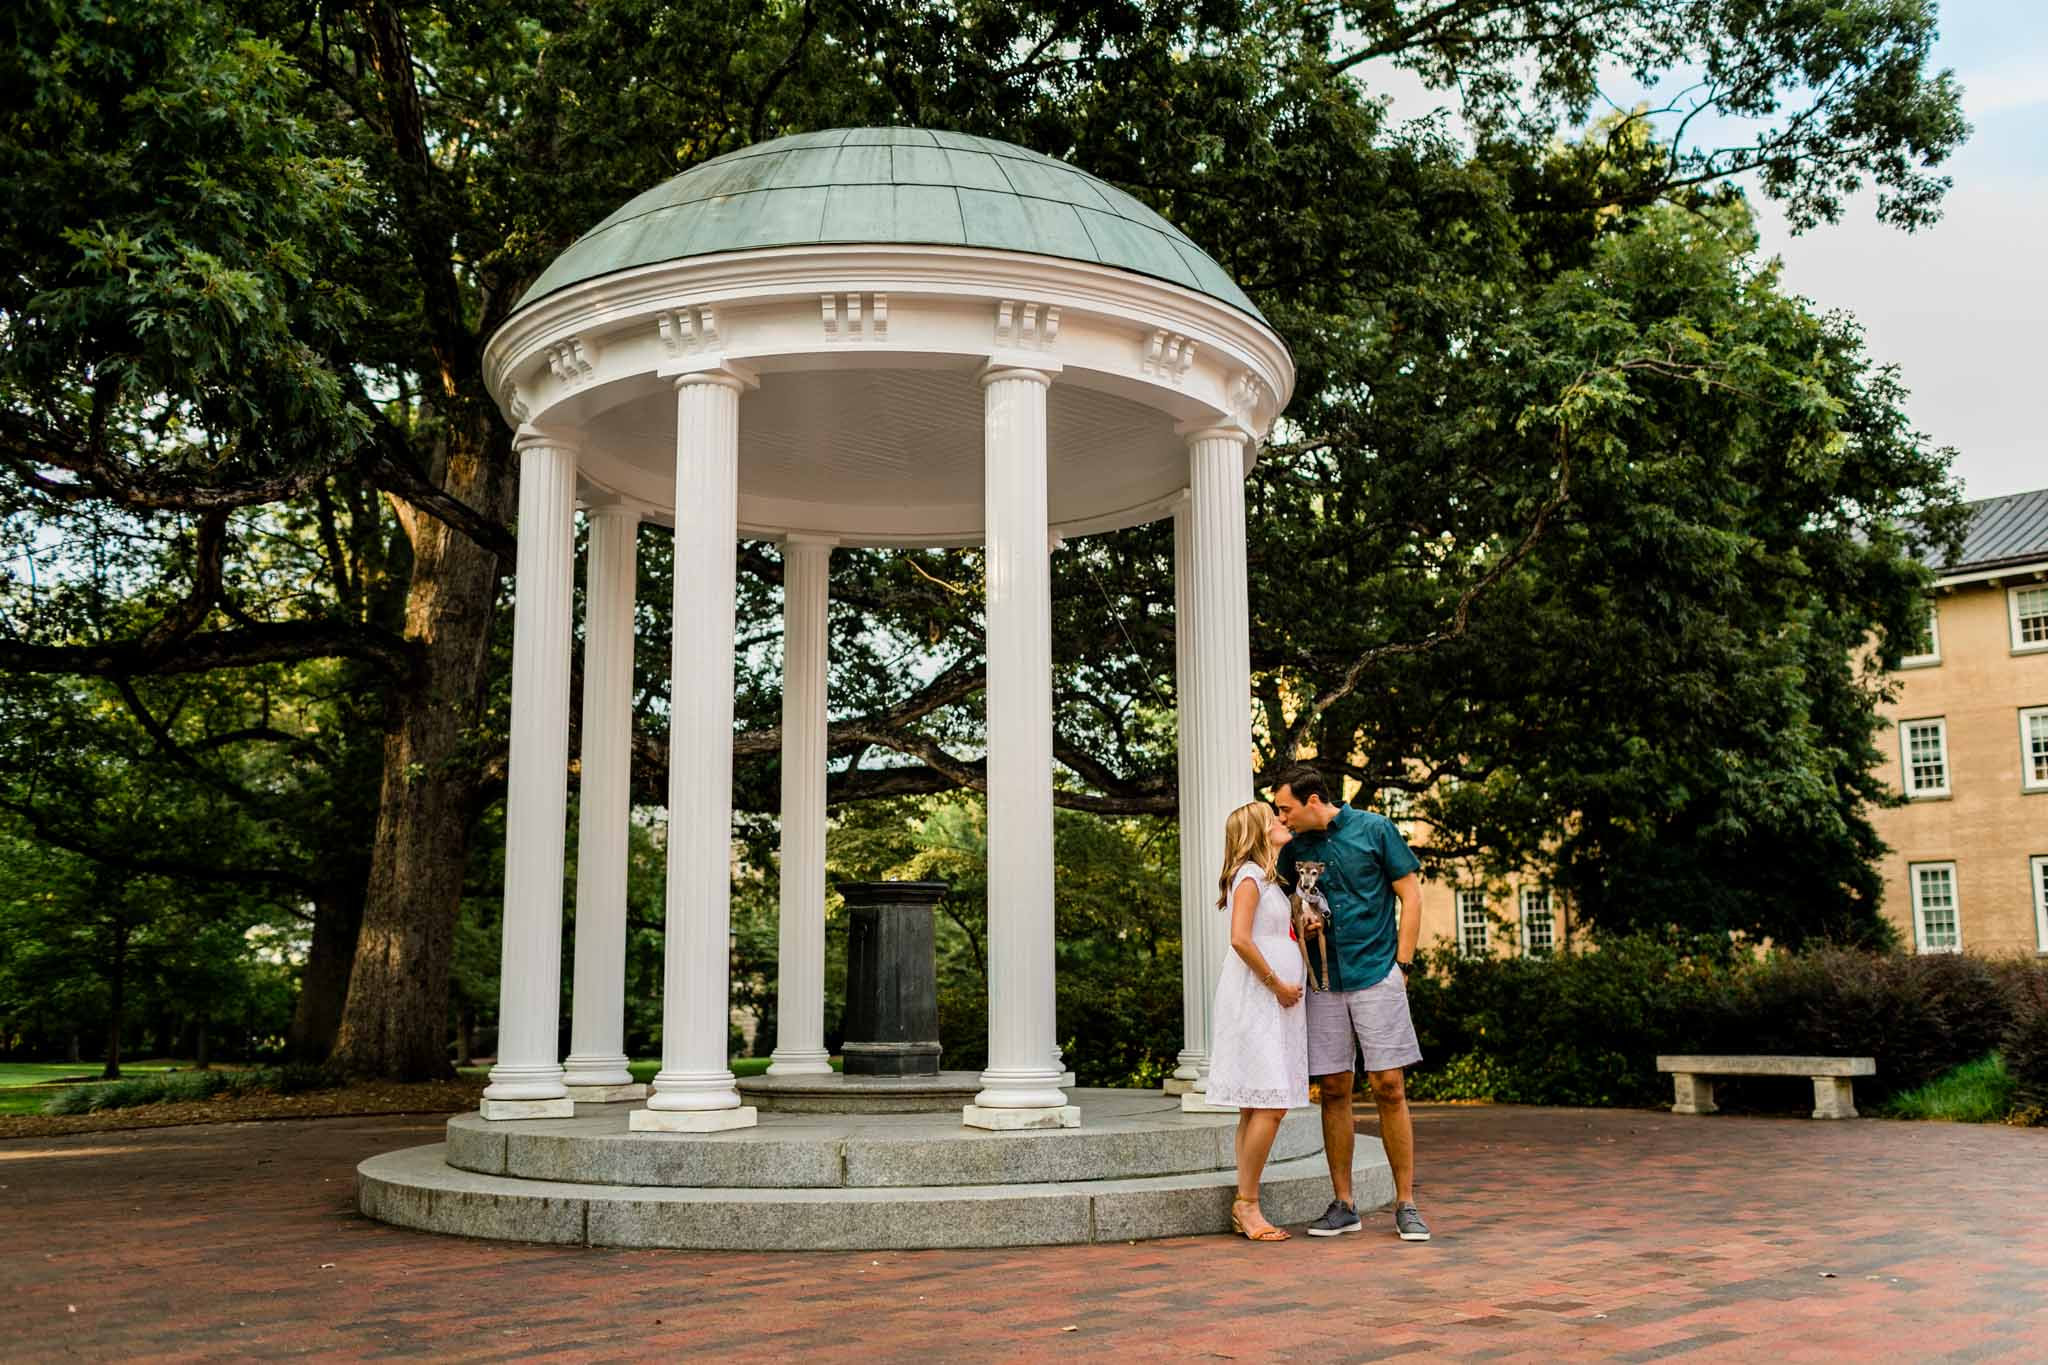 Maternity Photos at UNC Old Well, Chapel Hill NC   By G. Lin Photography   Couple kissing by the Old Well at UNC